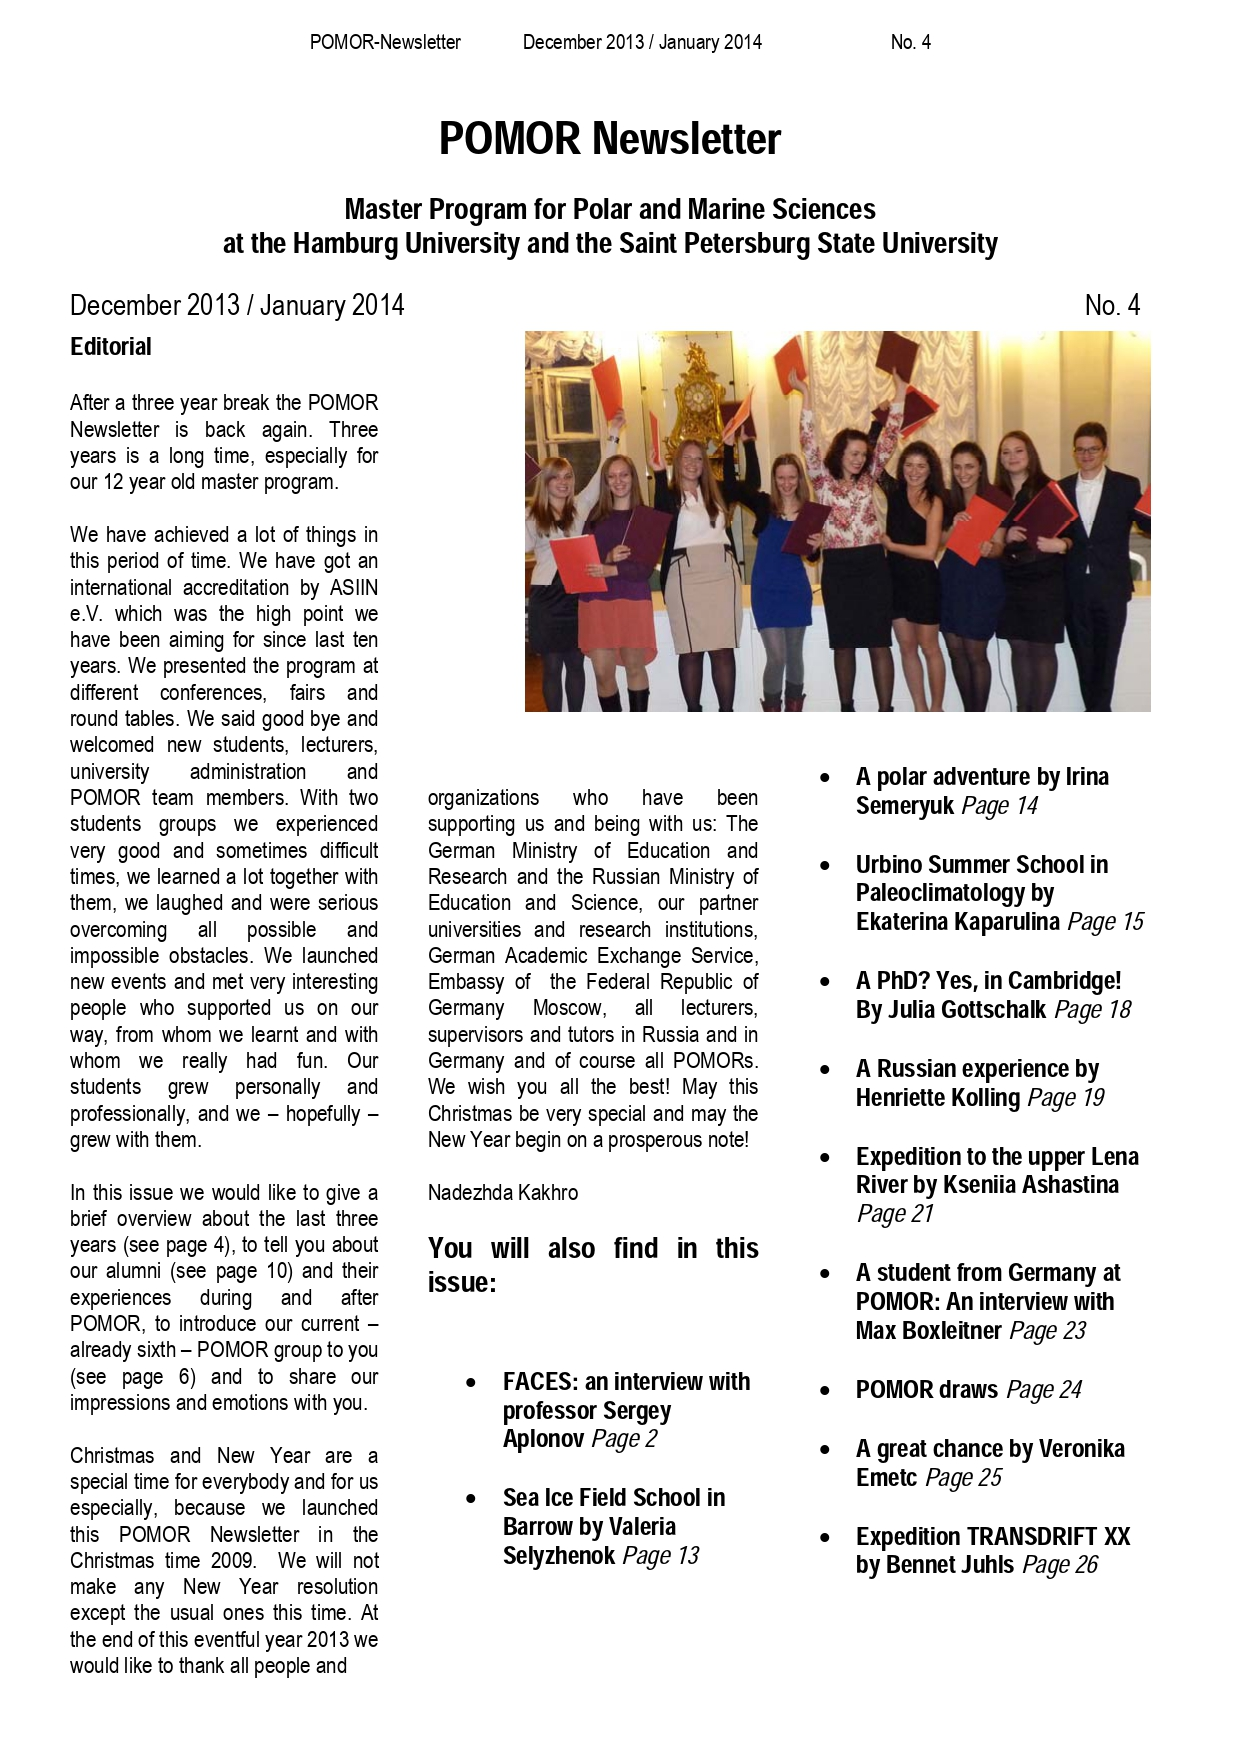 POMOR Newsletter 4 3 page 0001